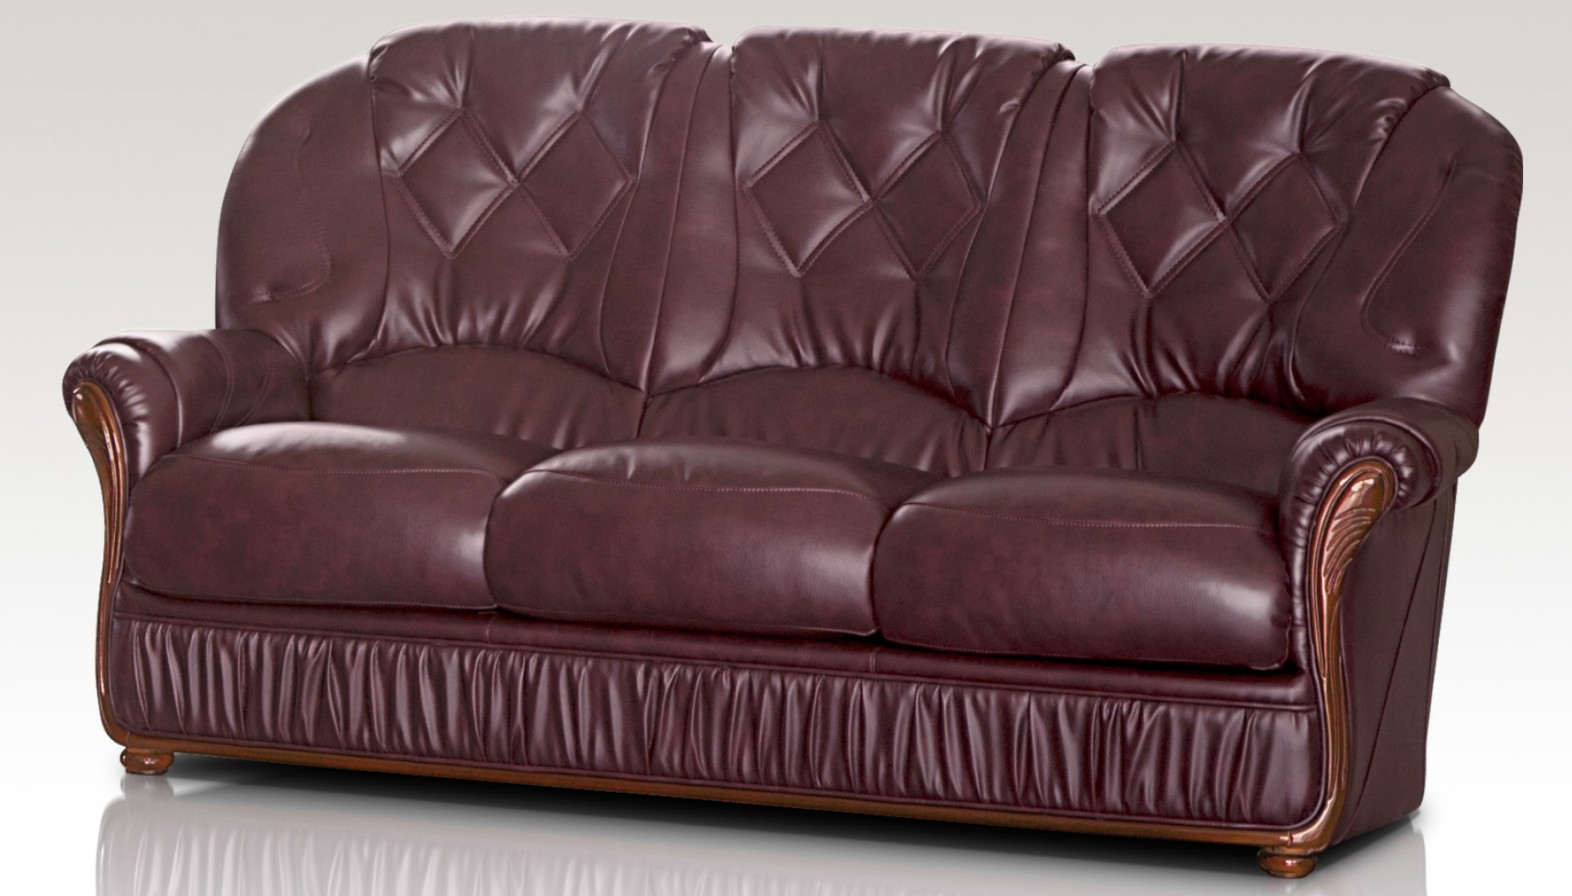 Angela italian leather 3 seater sofa settee burgandyjpg for Genuine italian leather sectional sofa